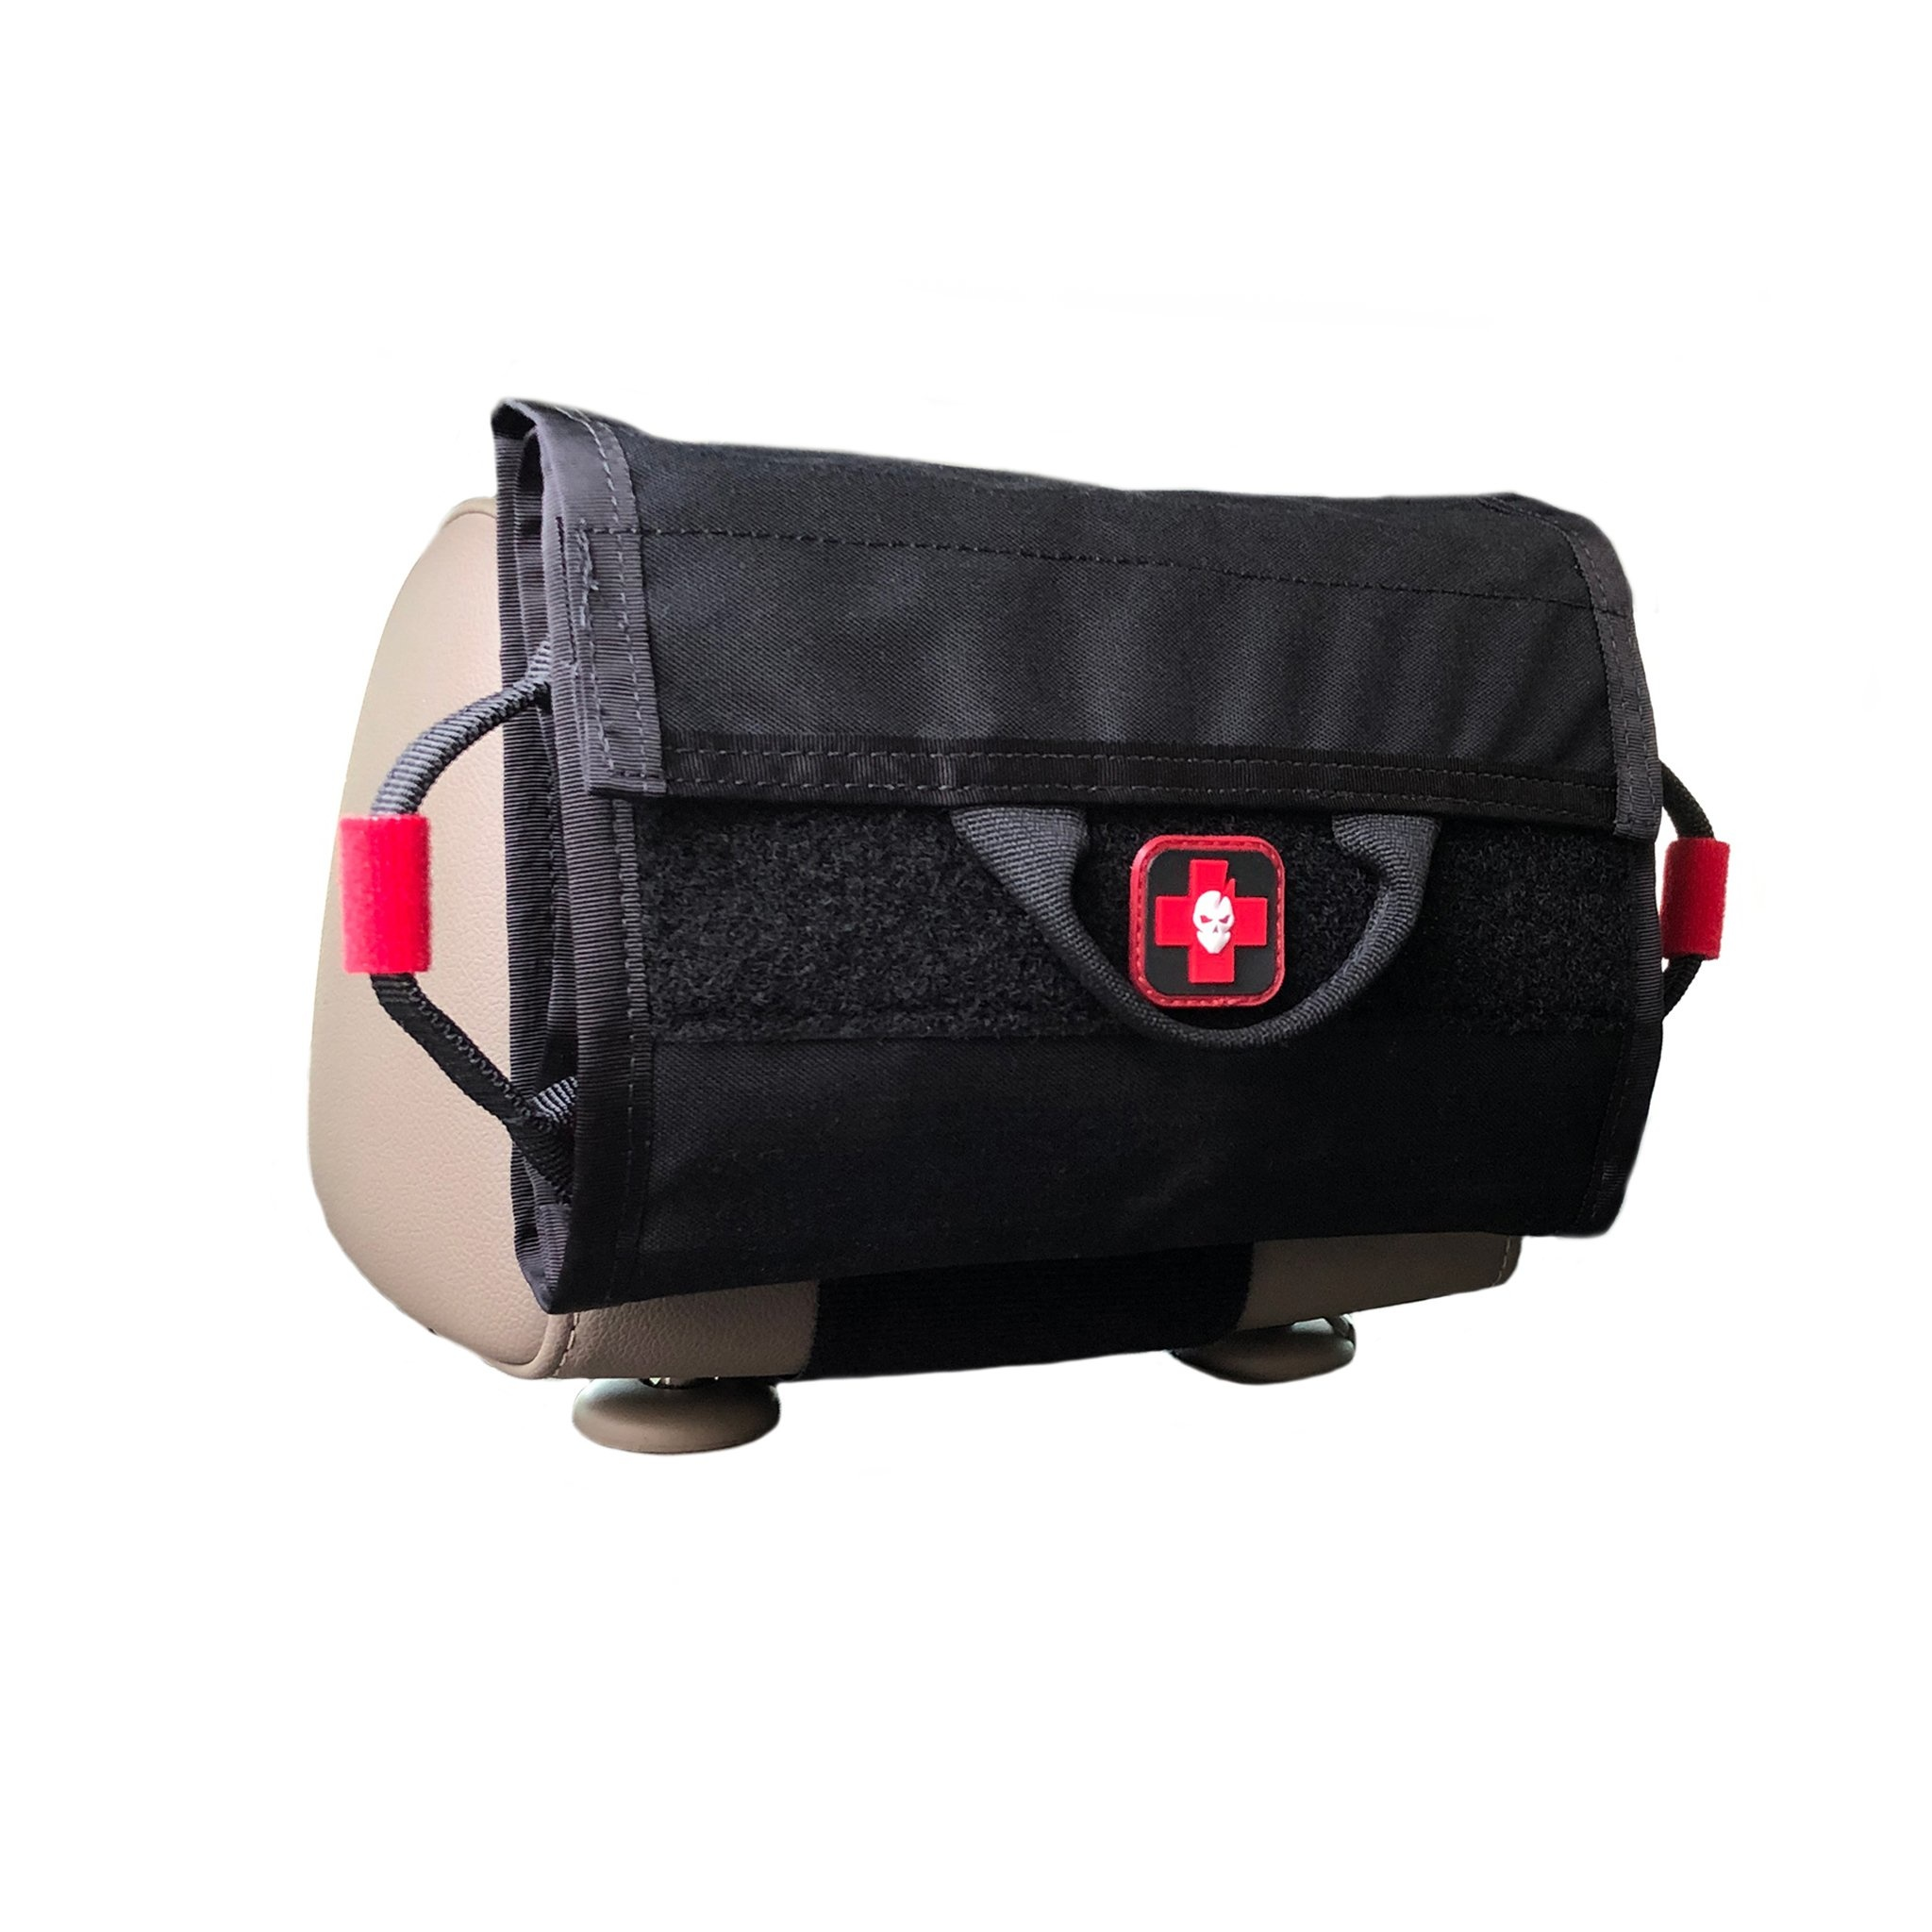 ITS Tactical ITS Tactical Vehicle First Aid Kit Black